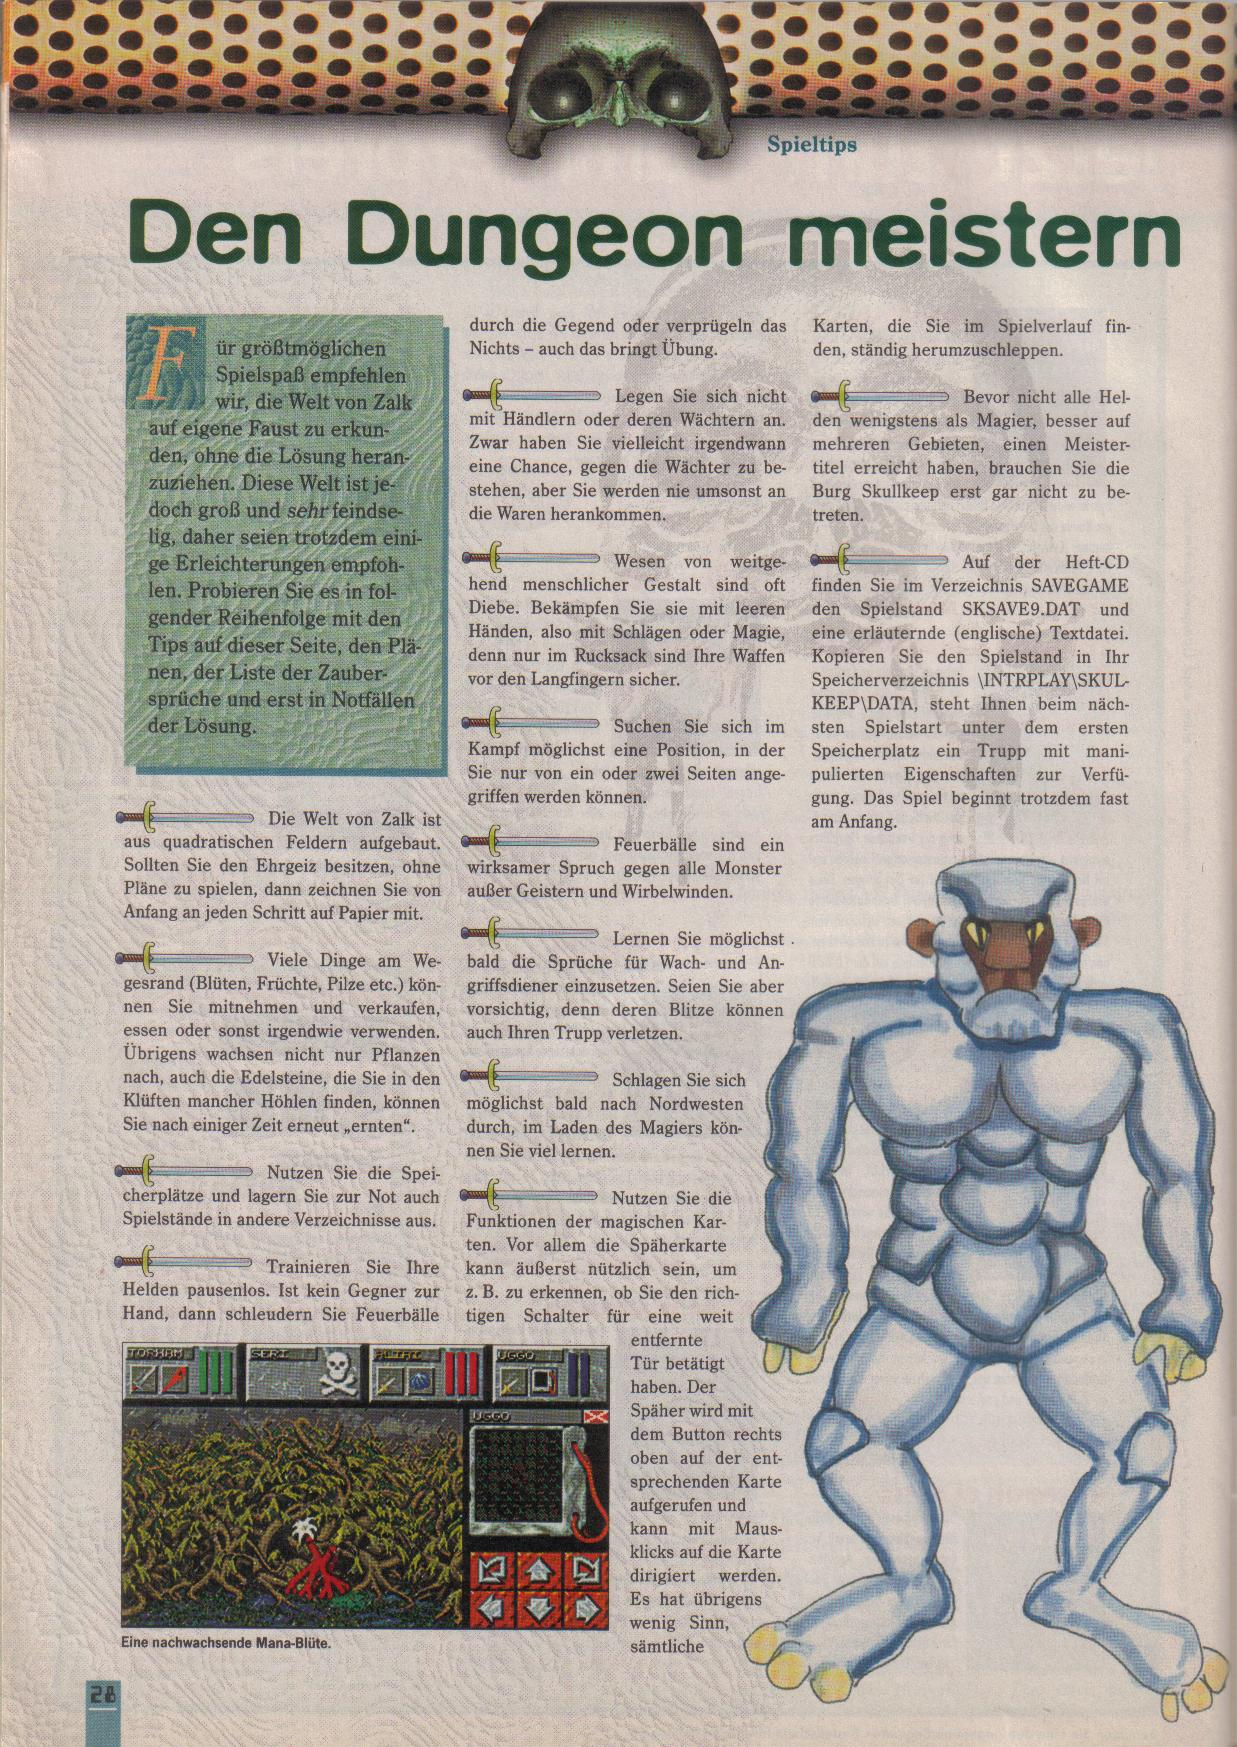 Dungeon Master II for PC (German, Best Seller Games) Page 28